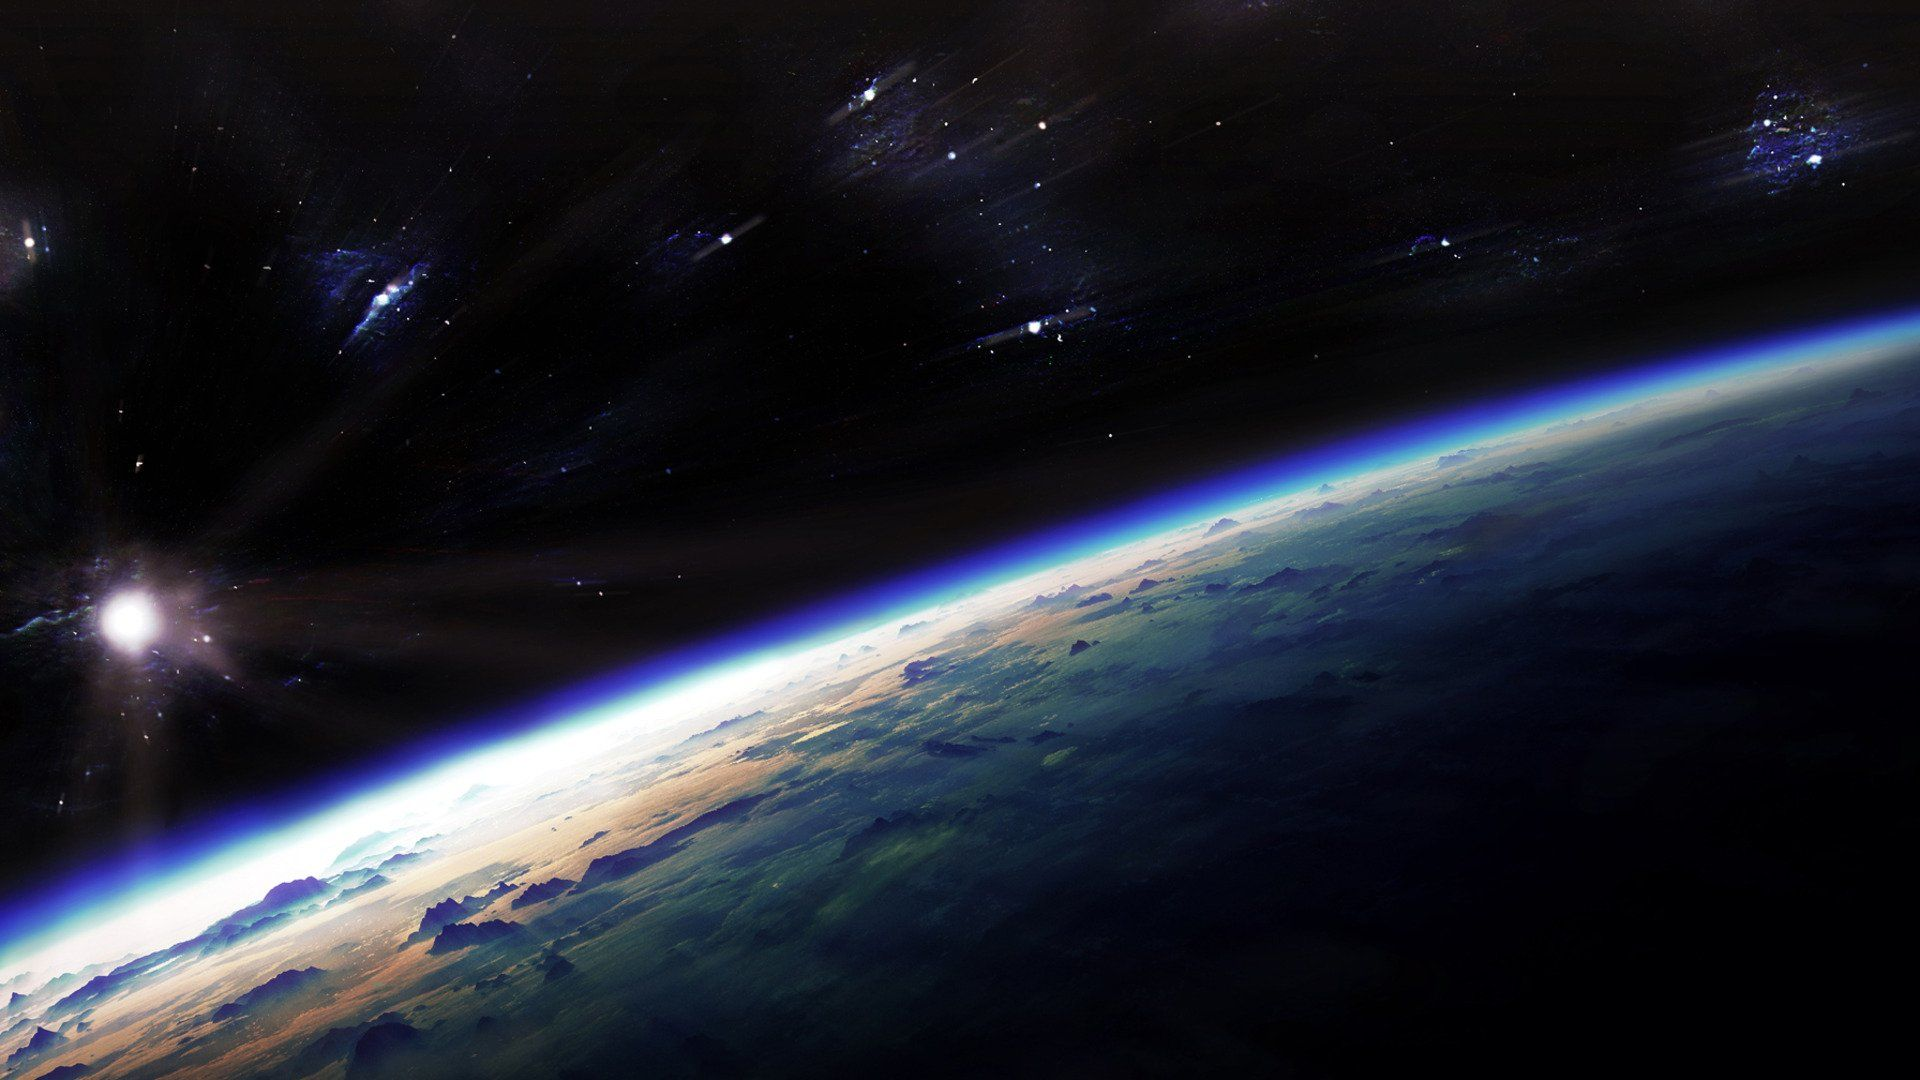 Earth From Space Wallpapers Top Free Earth From Space Backgrounds Wallpaperaccess